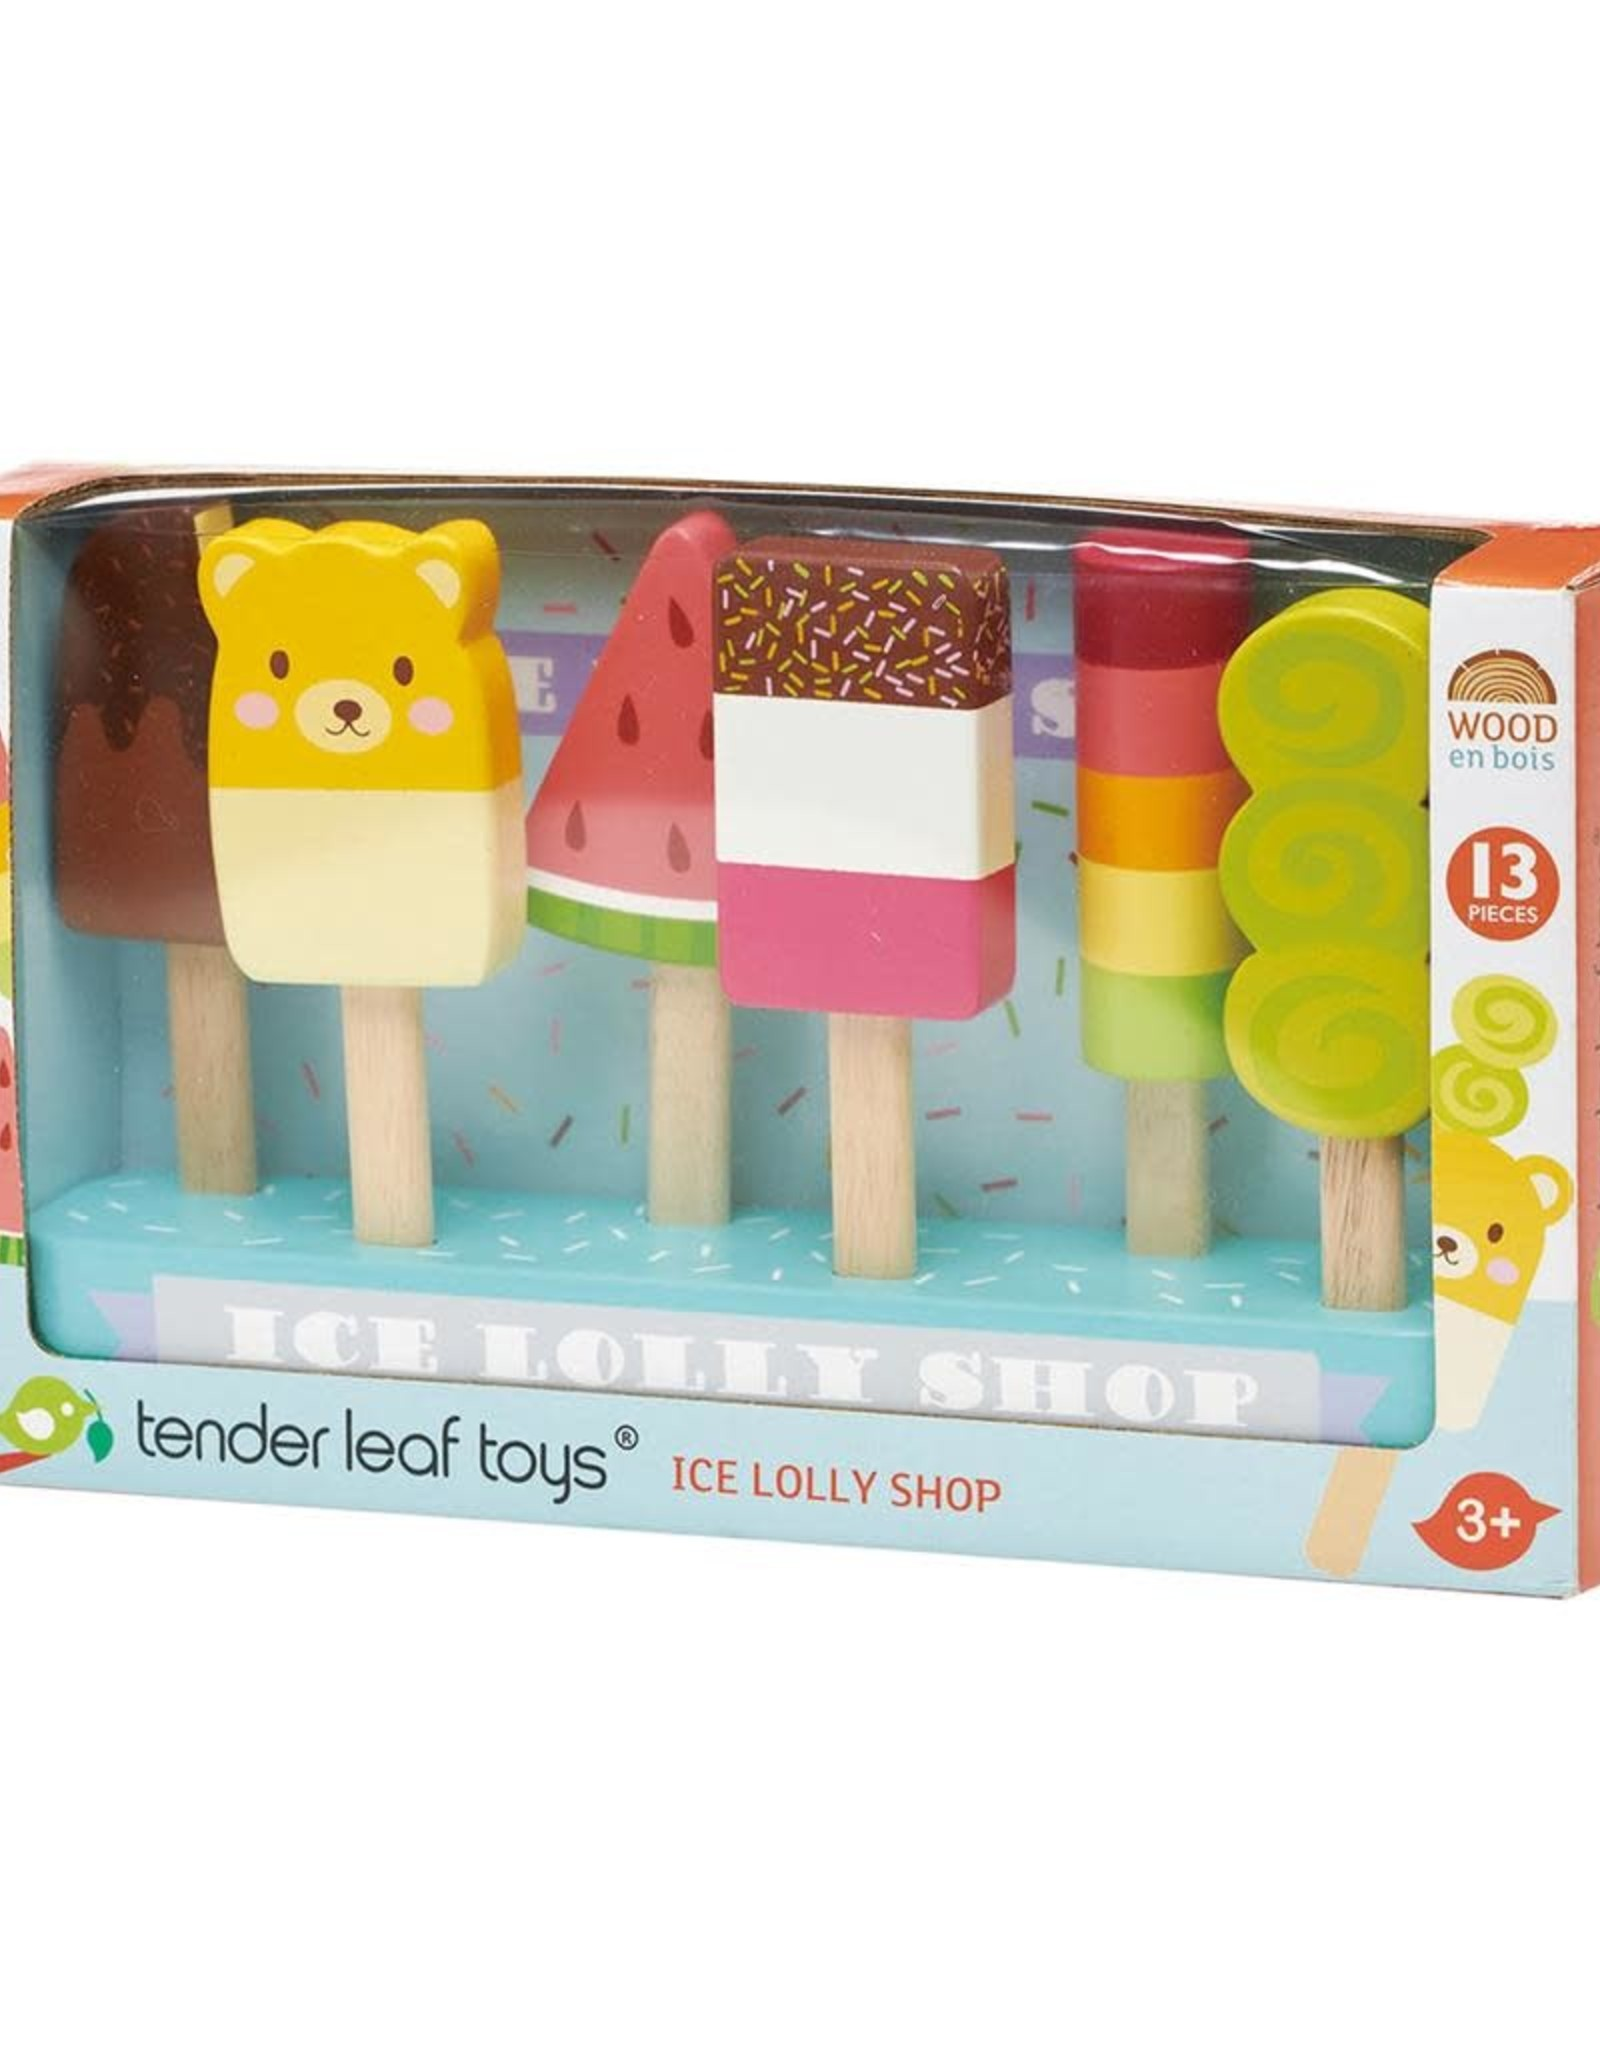 Tender Leaf Toys ijslolly Shop